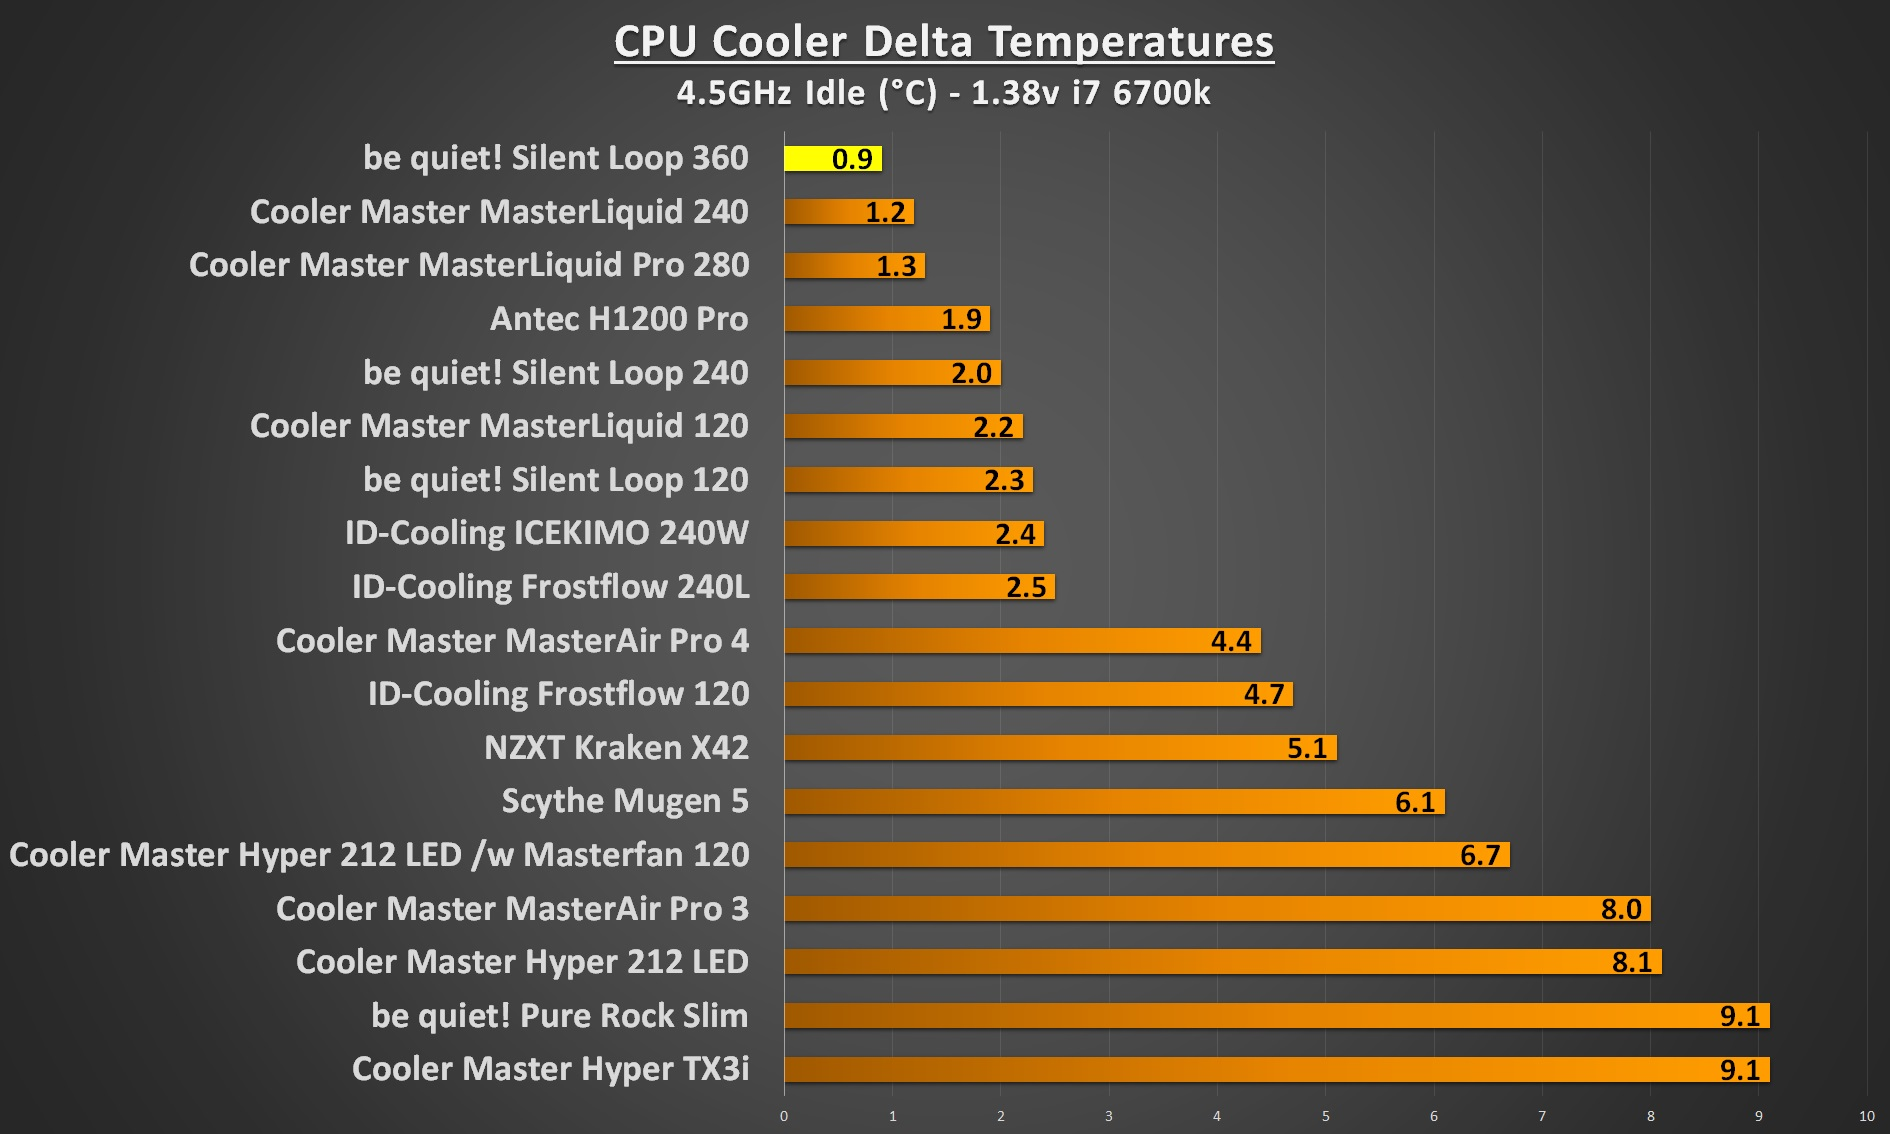 bequiet silent loop 360 4.5Ghz idle